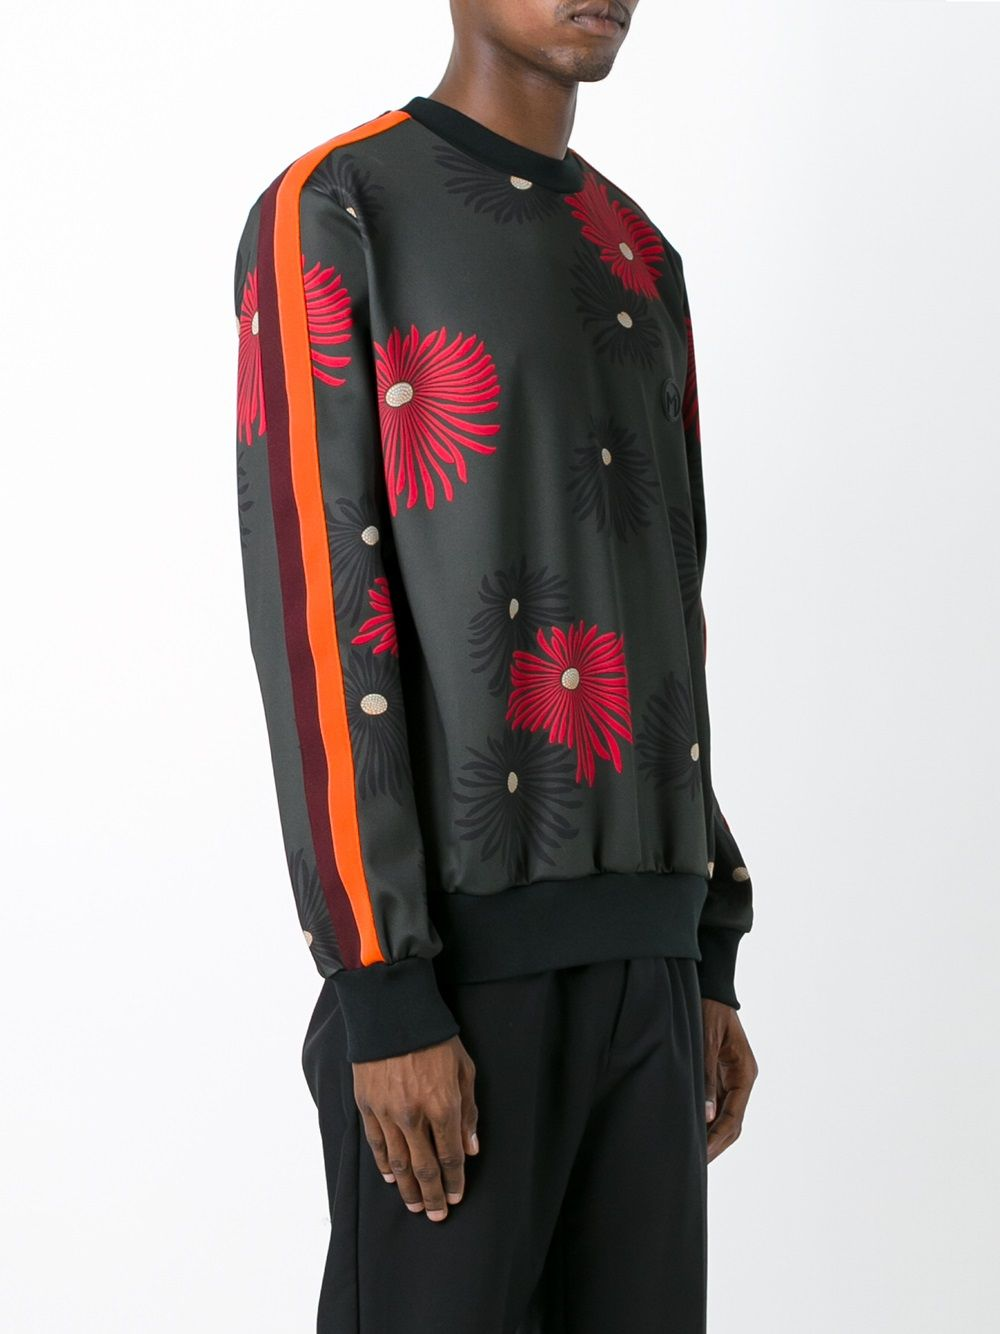 burgundy jersey sweatshirt with orange sleeve bands, all-over red floral print  MSGM |  | 2140MM70Y-164668VERDE-BORDEAUX